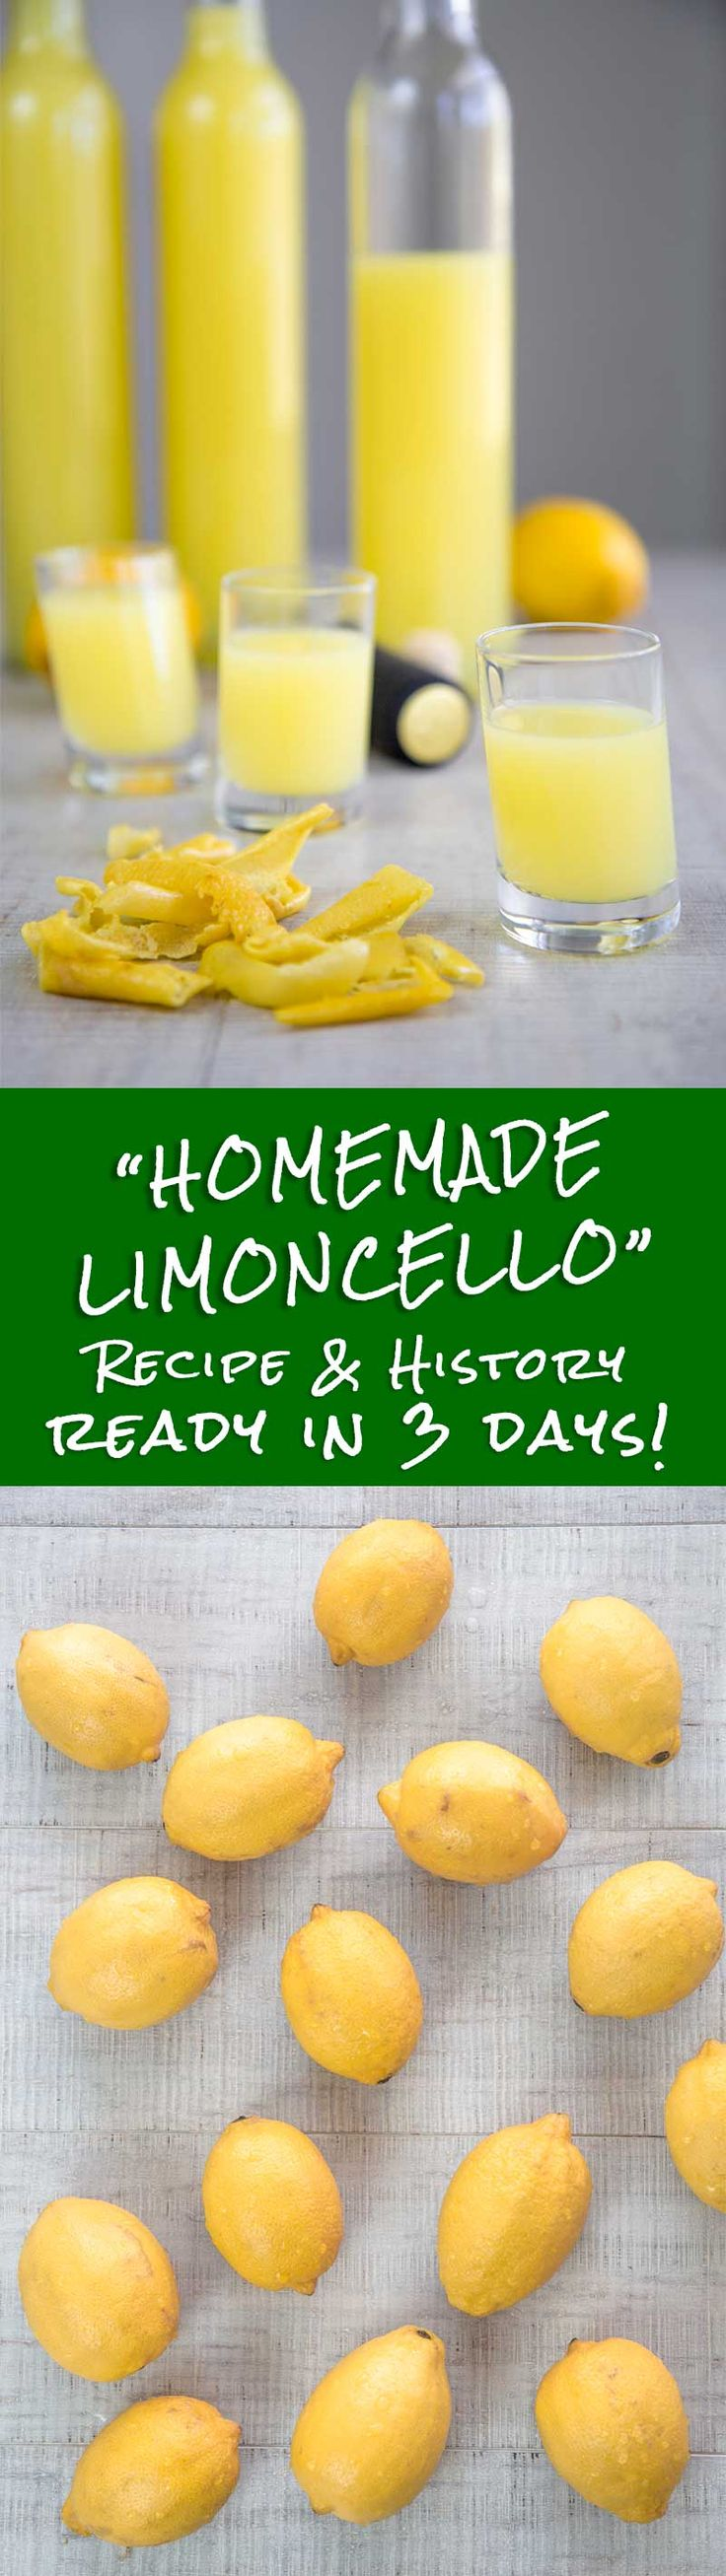 HOMEMADE LIMONCELLO ITALIAN RECIPE AND HISTORY – ready in 3 days